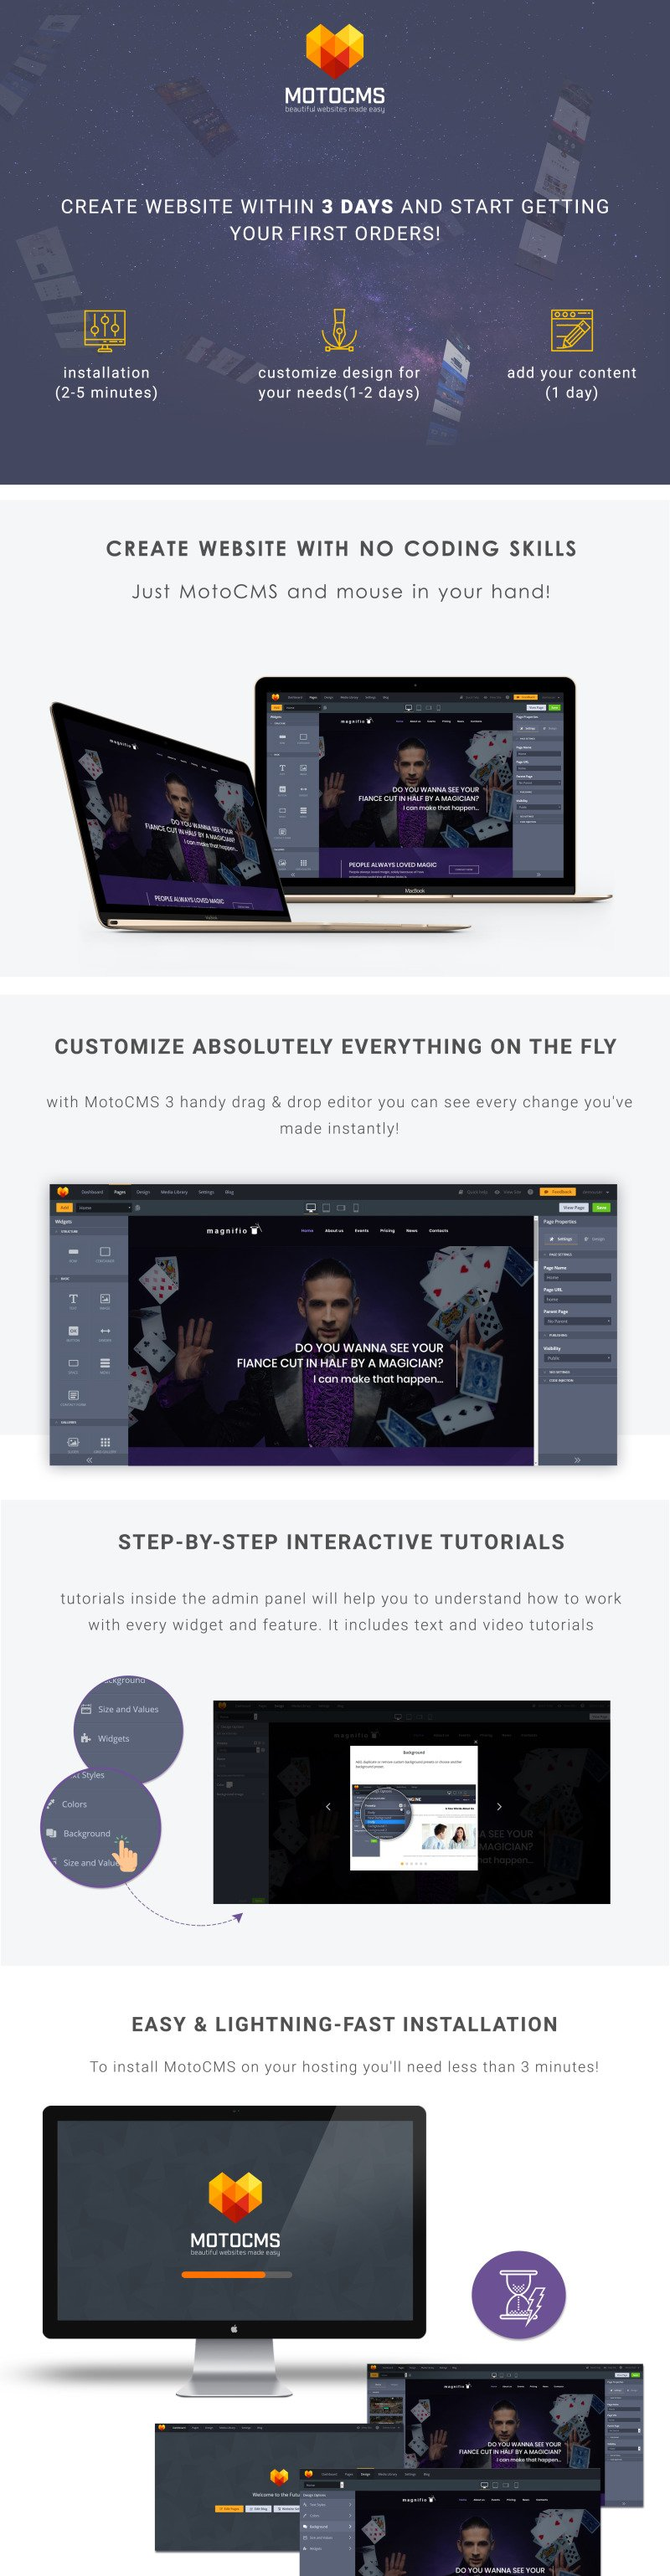 Magnifio - Magician Artist & Performer Moto CMS 3 Template - Features Image 1